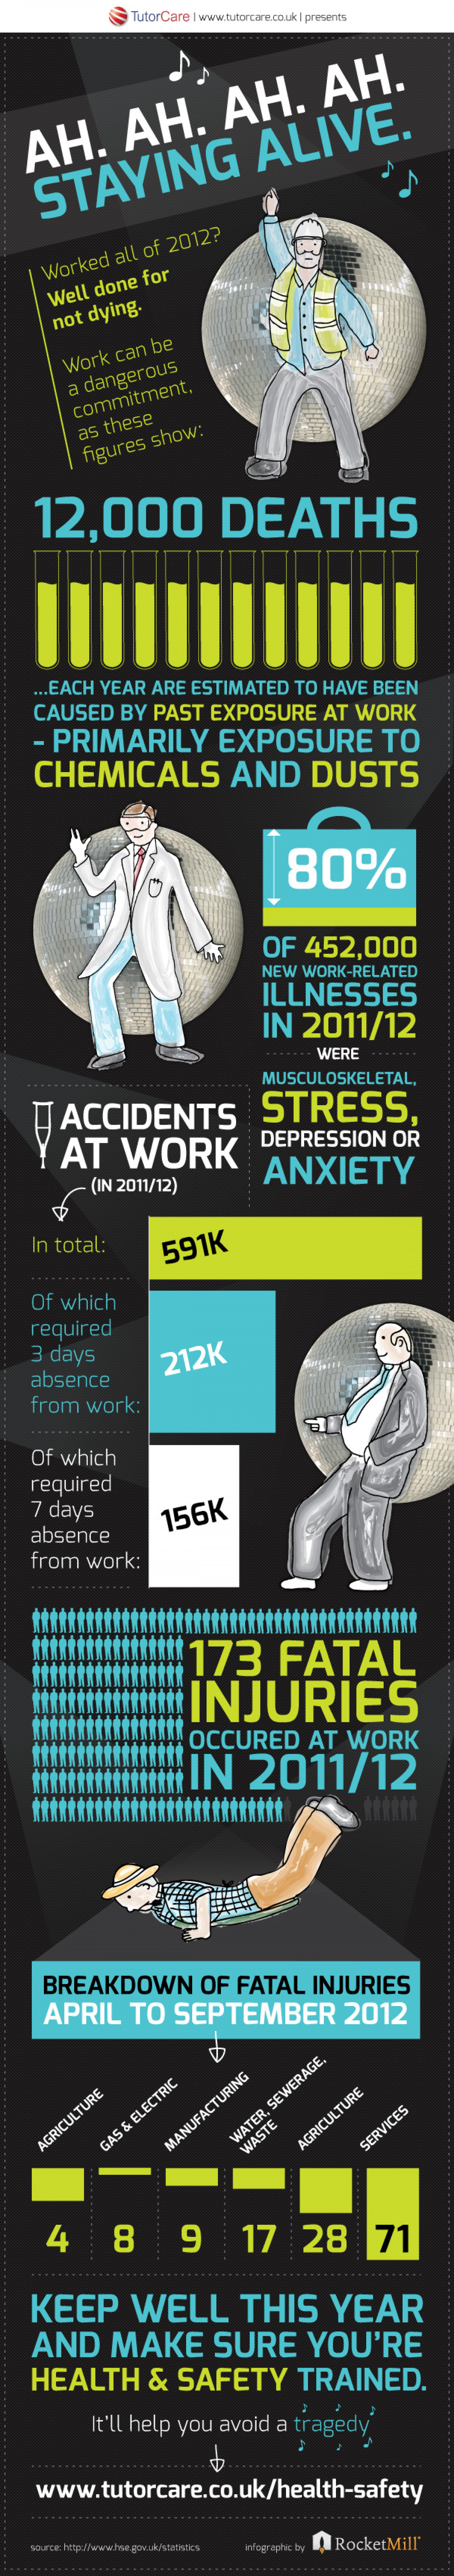 Staying Alive with Health & Safety Infographic